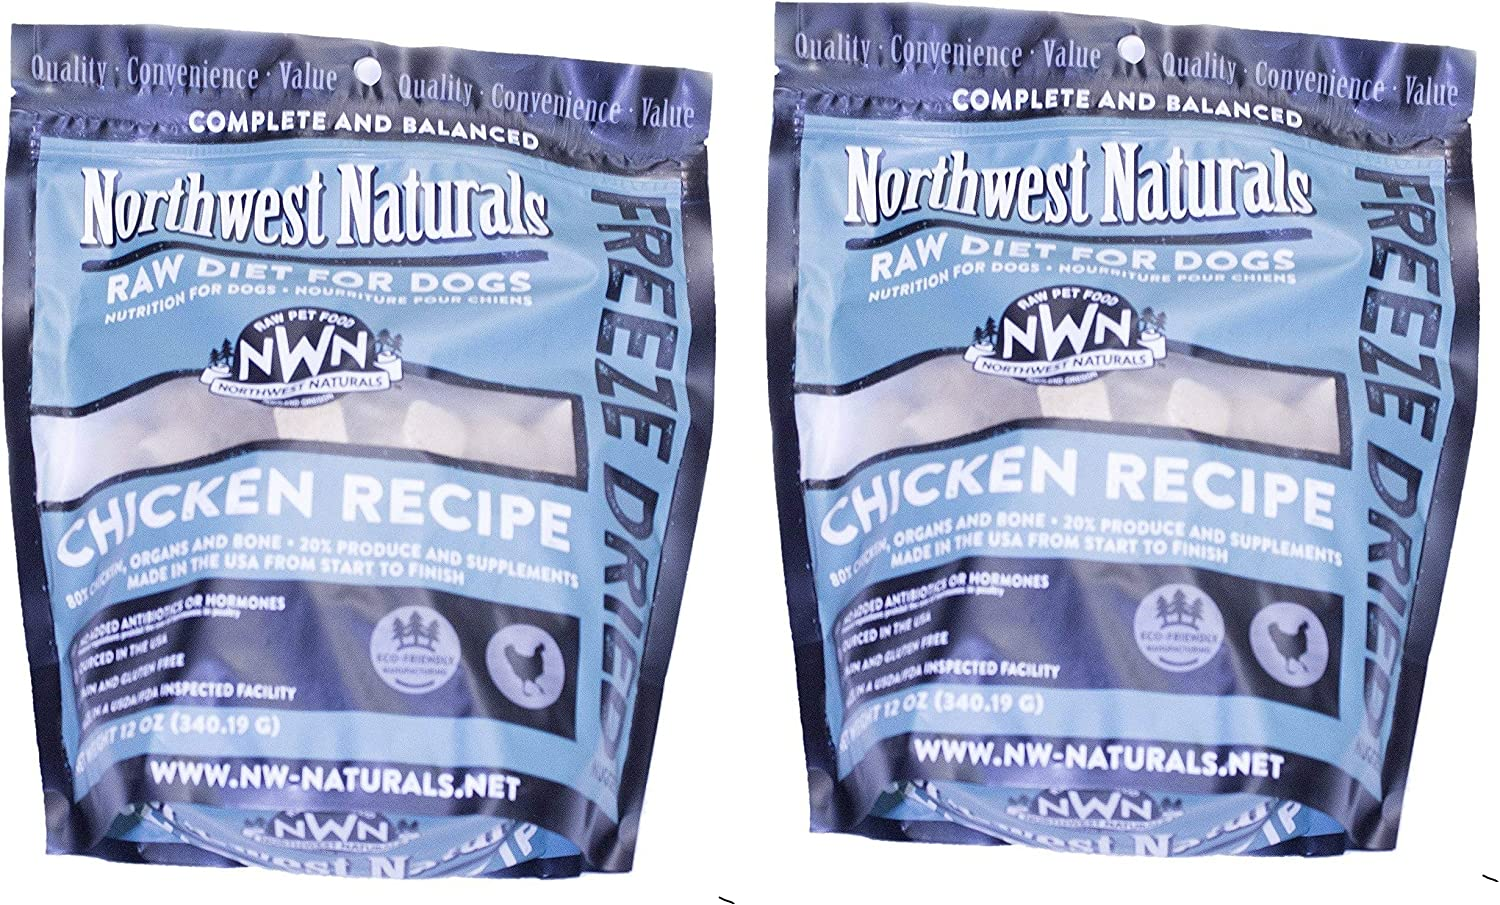 Northwest Naturals 2 Pack of Chicken Freeze-Dried Dog Food, 12 Ounces Each, Raw Diet for Dogs Made in The USA